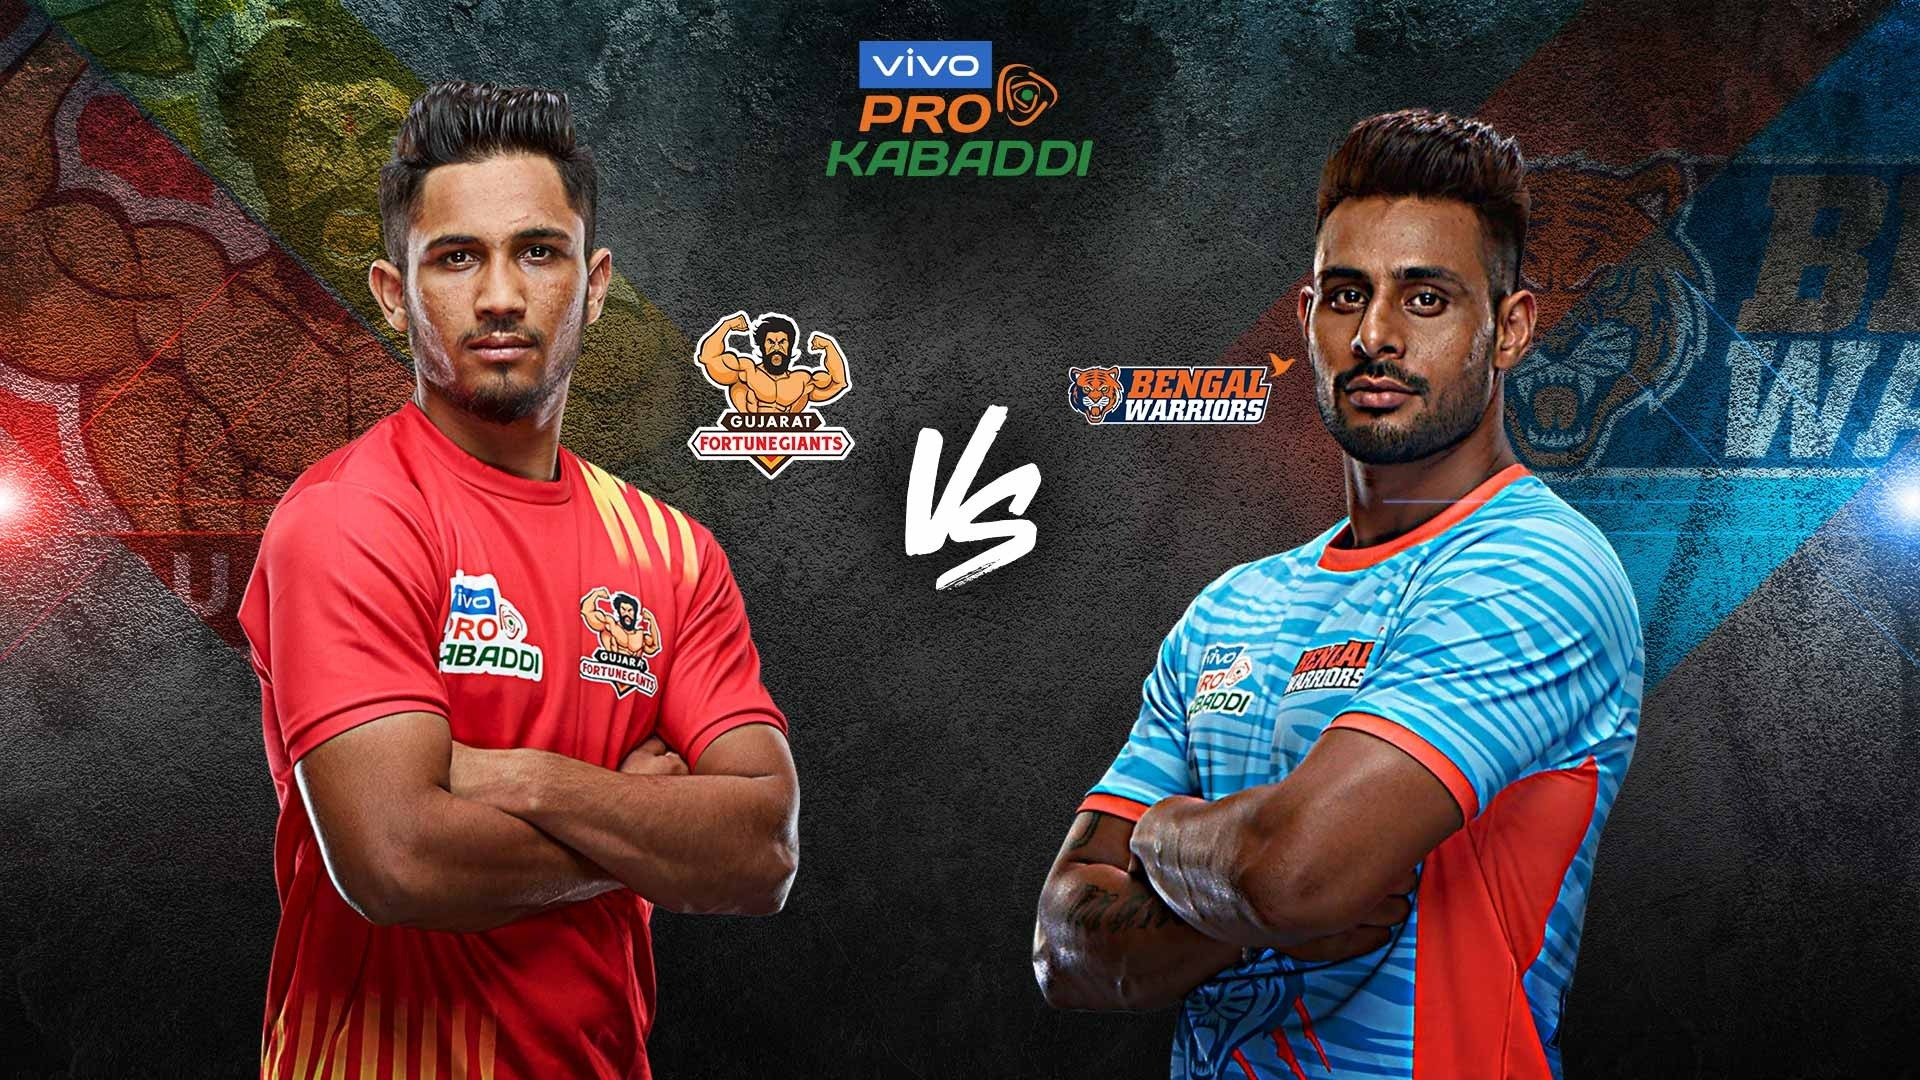 Bengal Warriors vs Gujarat Fortunegiants Match photos